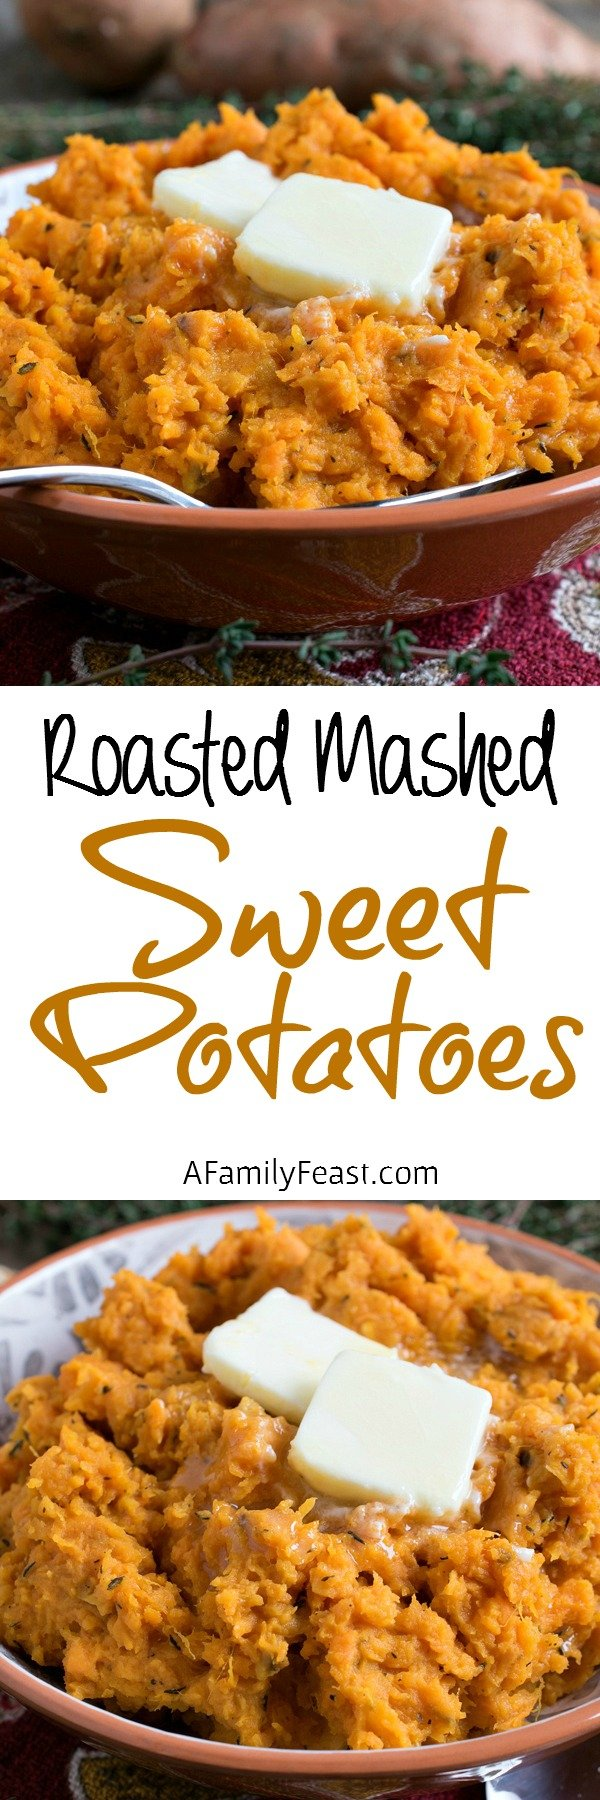 Roasted Mashed Sweet Potatoes - Mashed sweet potatoes with delicious, intense flavor thanks to roasting the potatoes in the oven. Super easy to make!